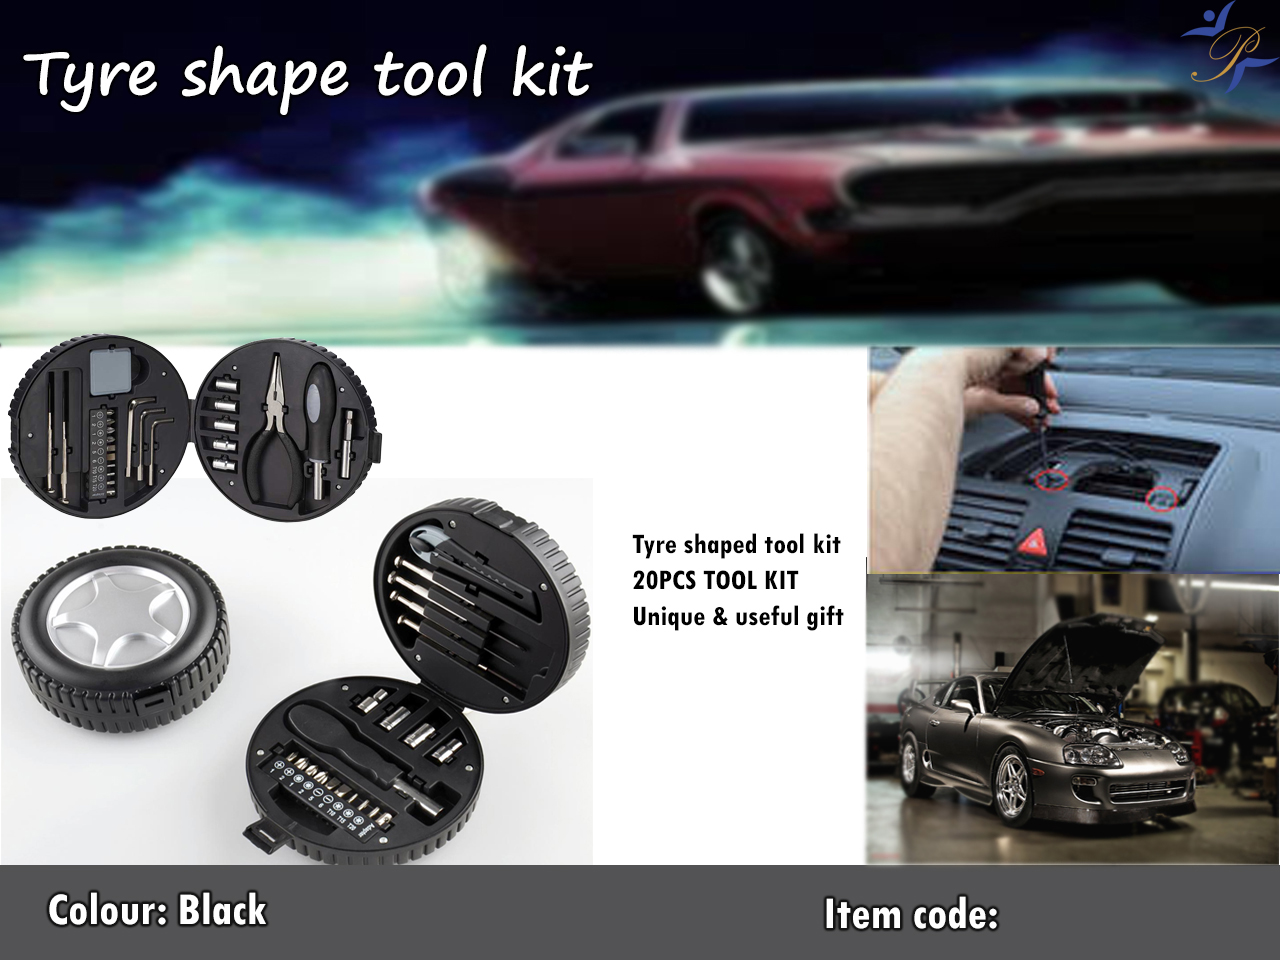 tyre shape toolkit